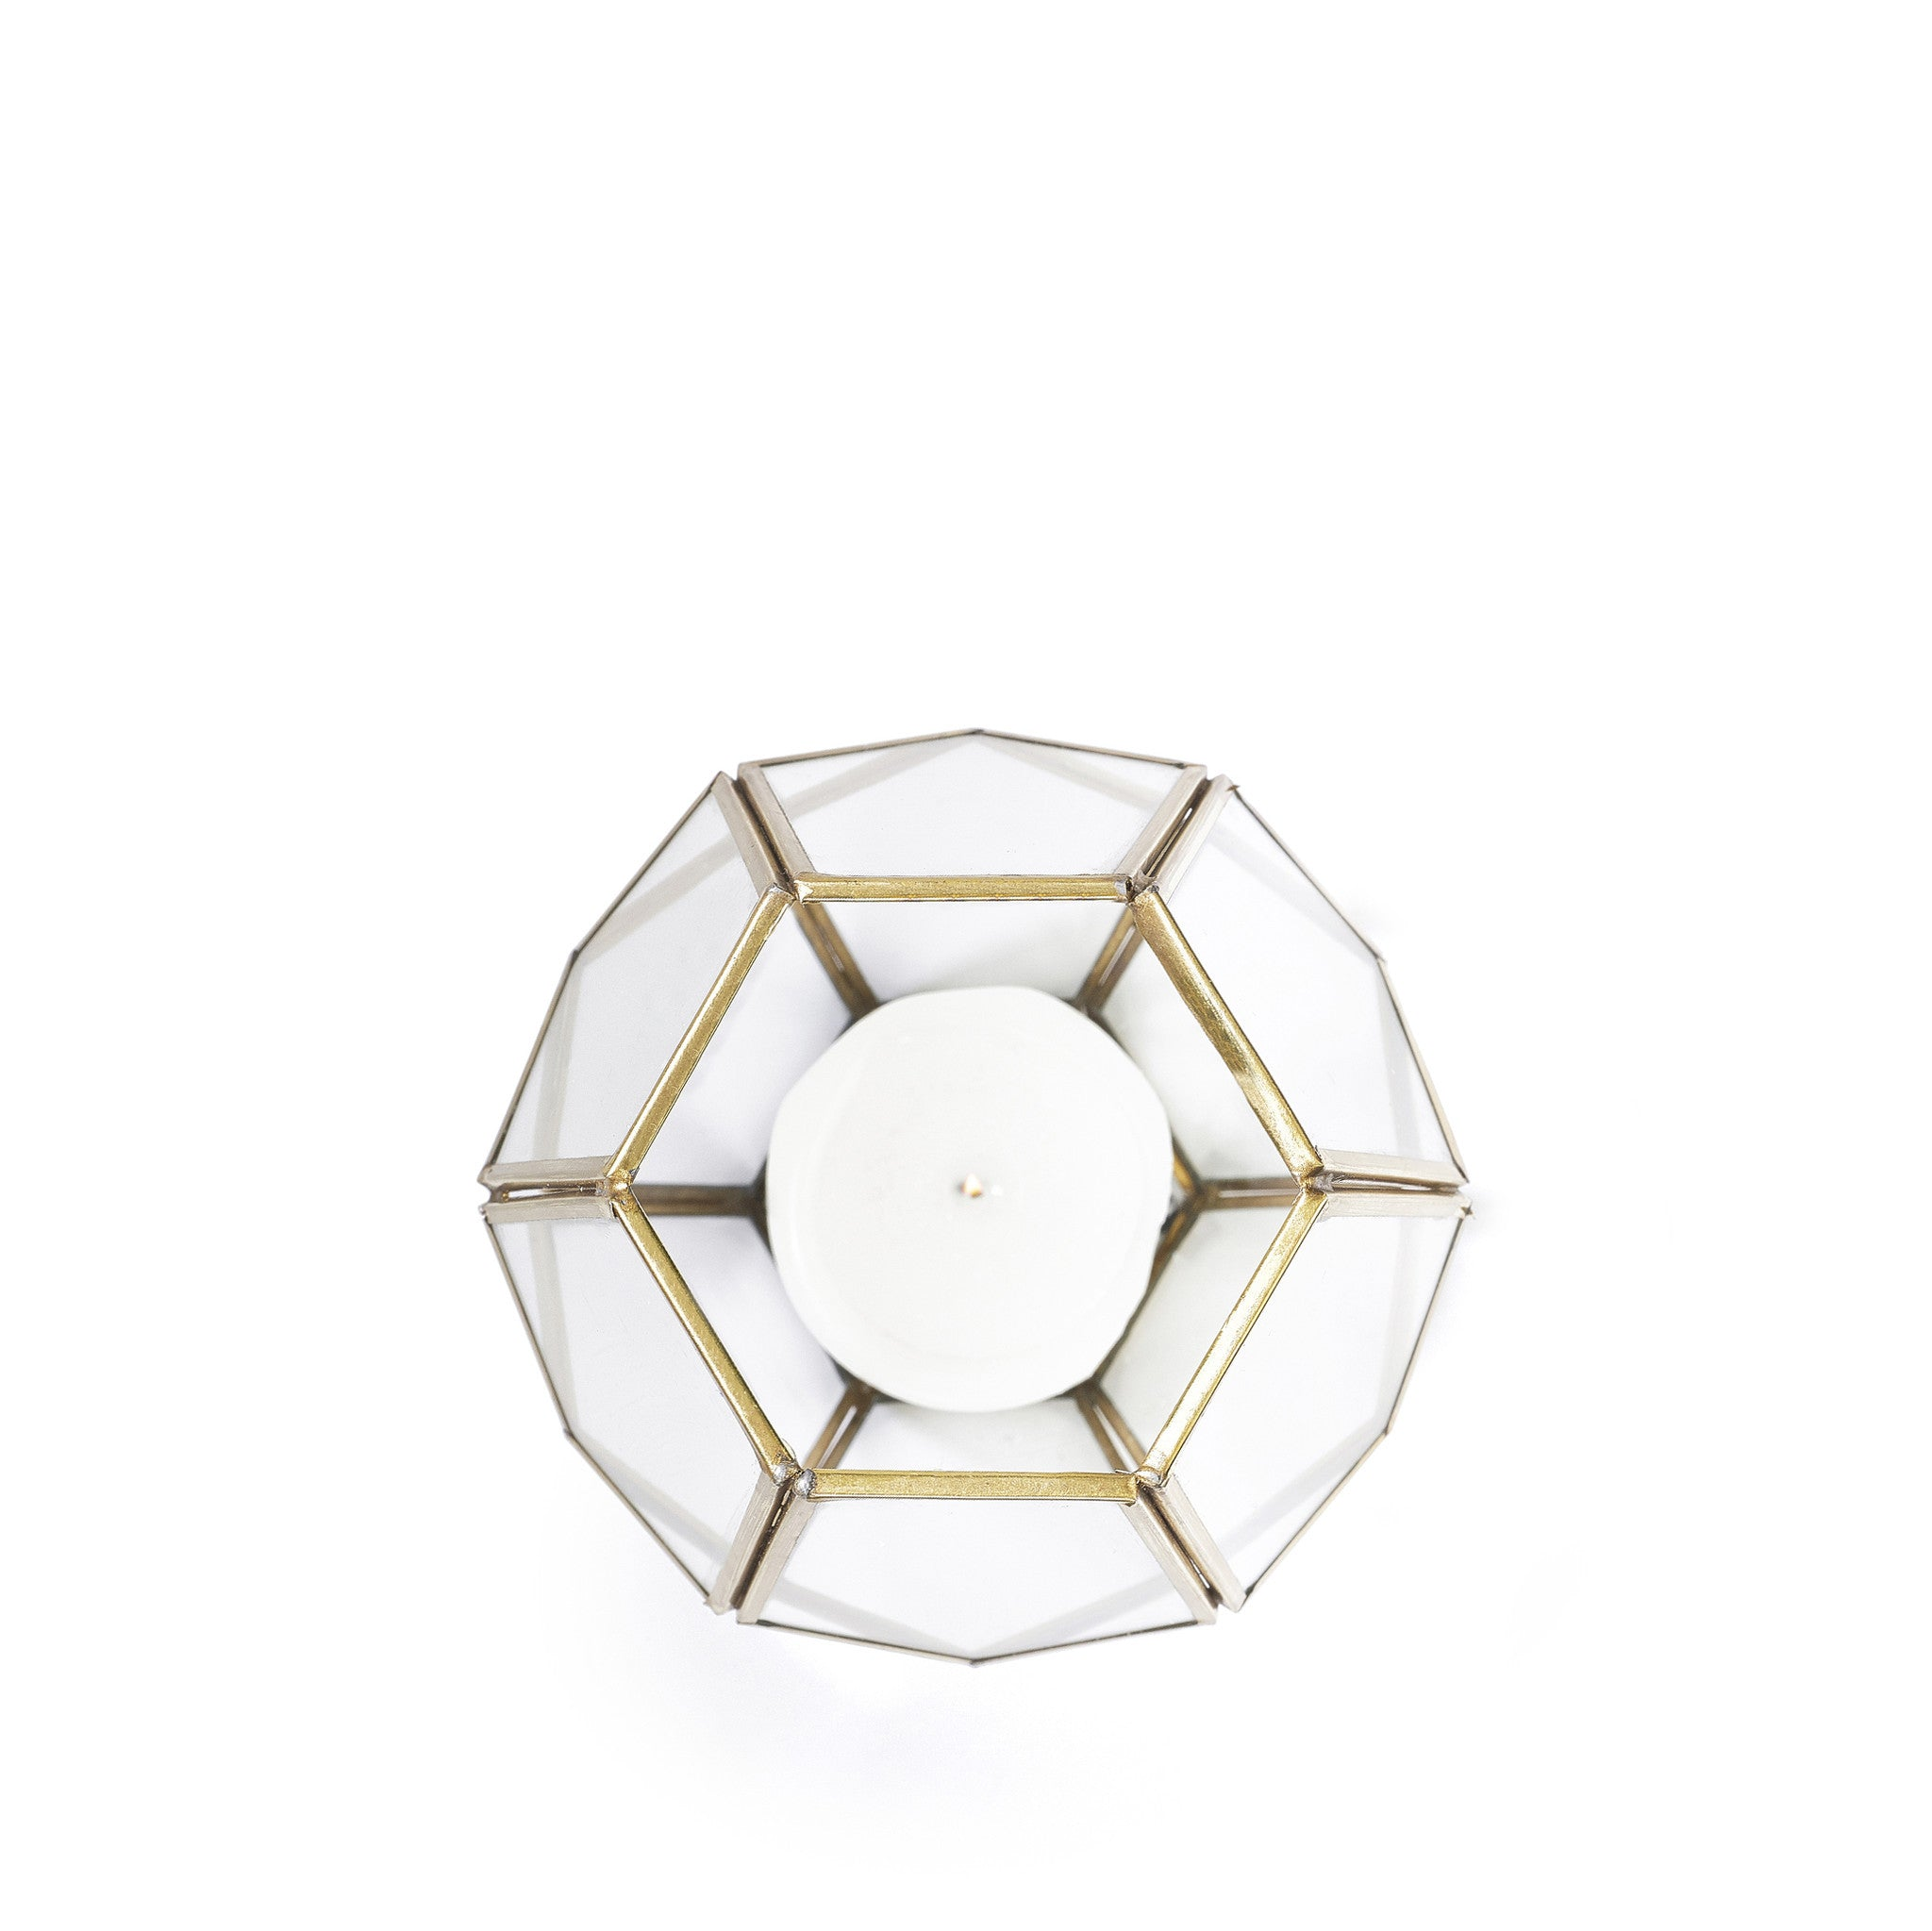 Hexagonal Lantern in Brass